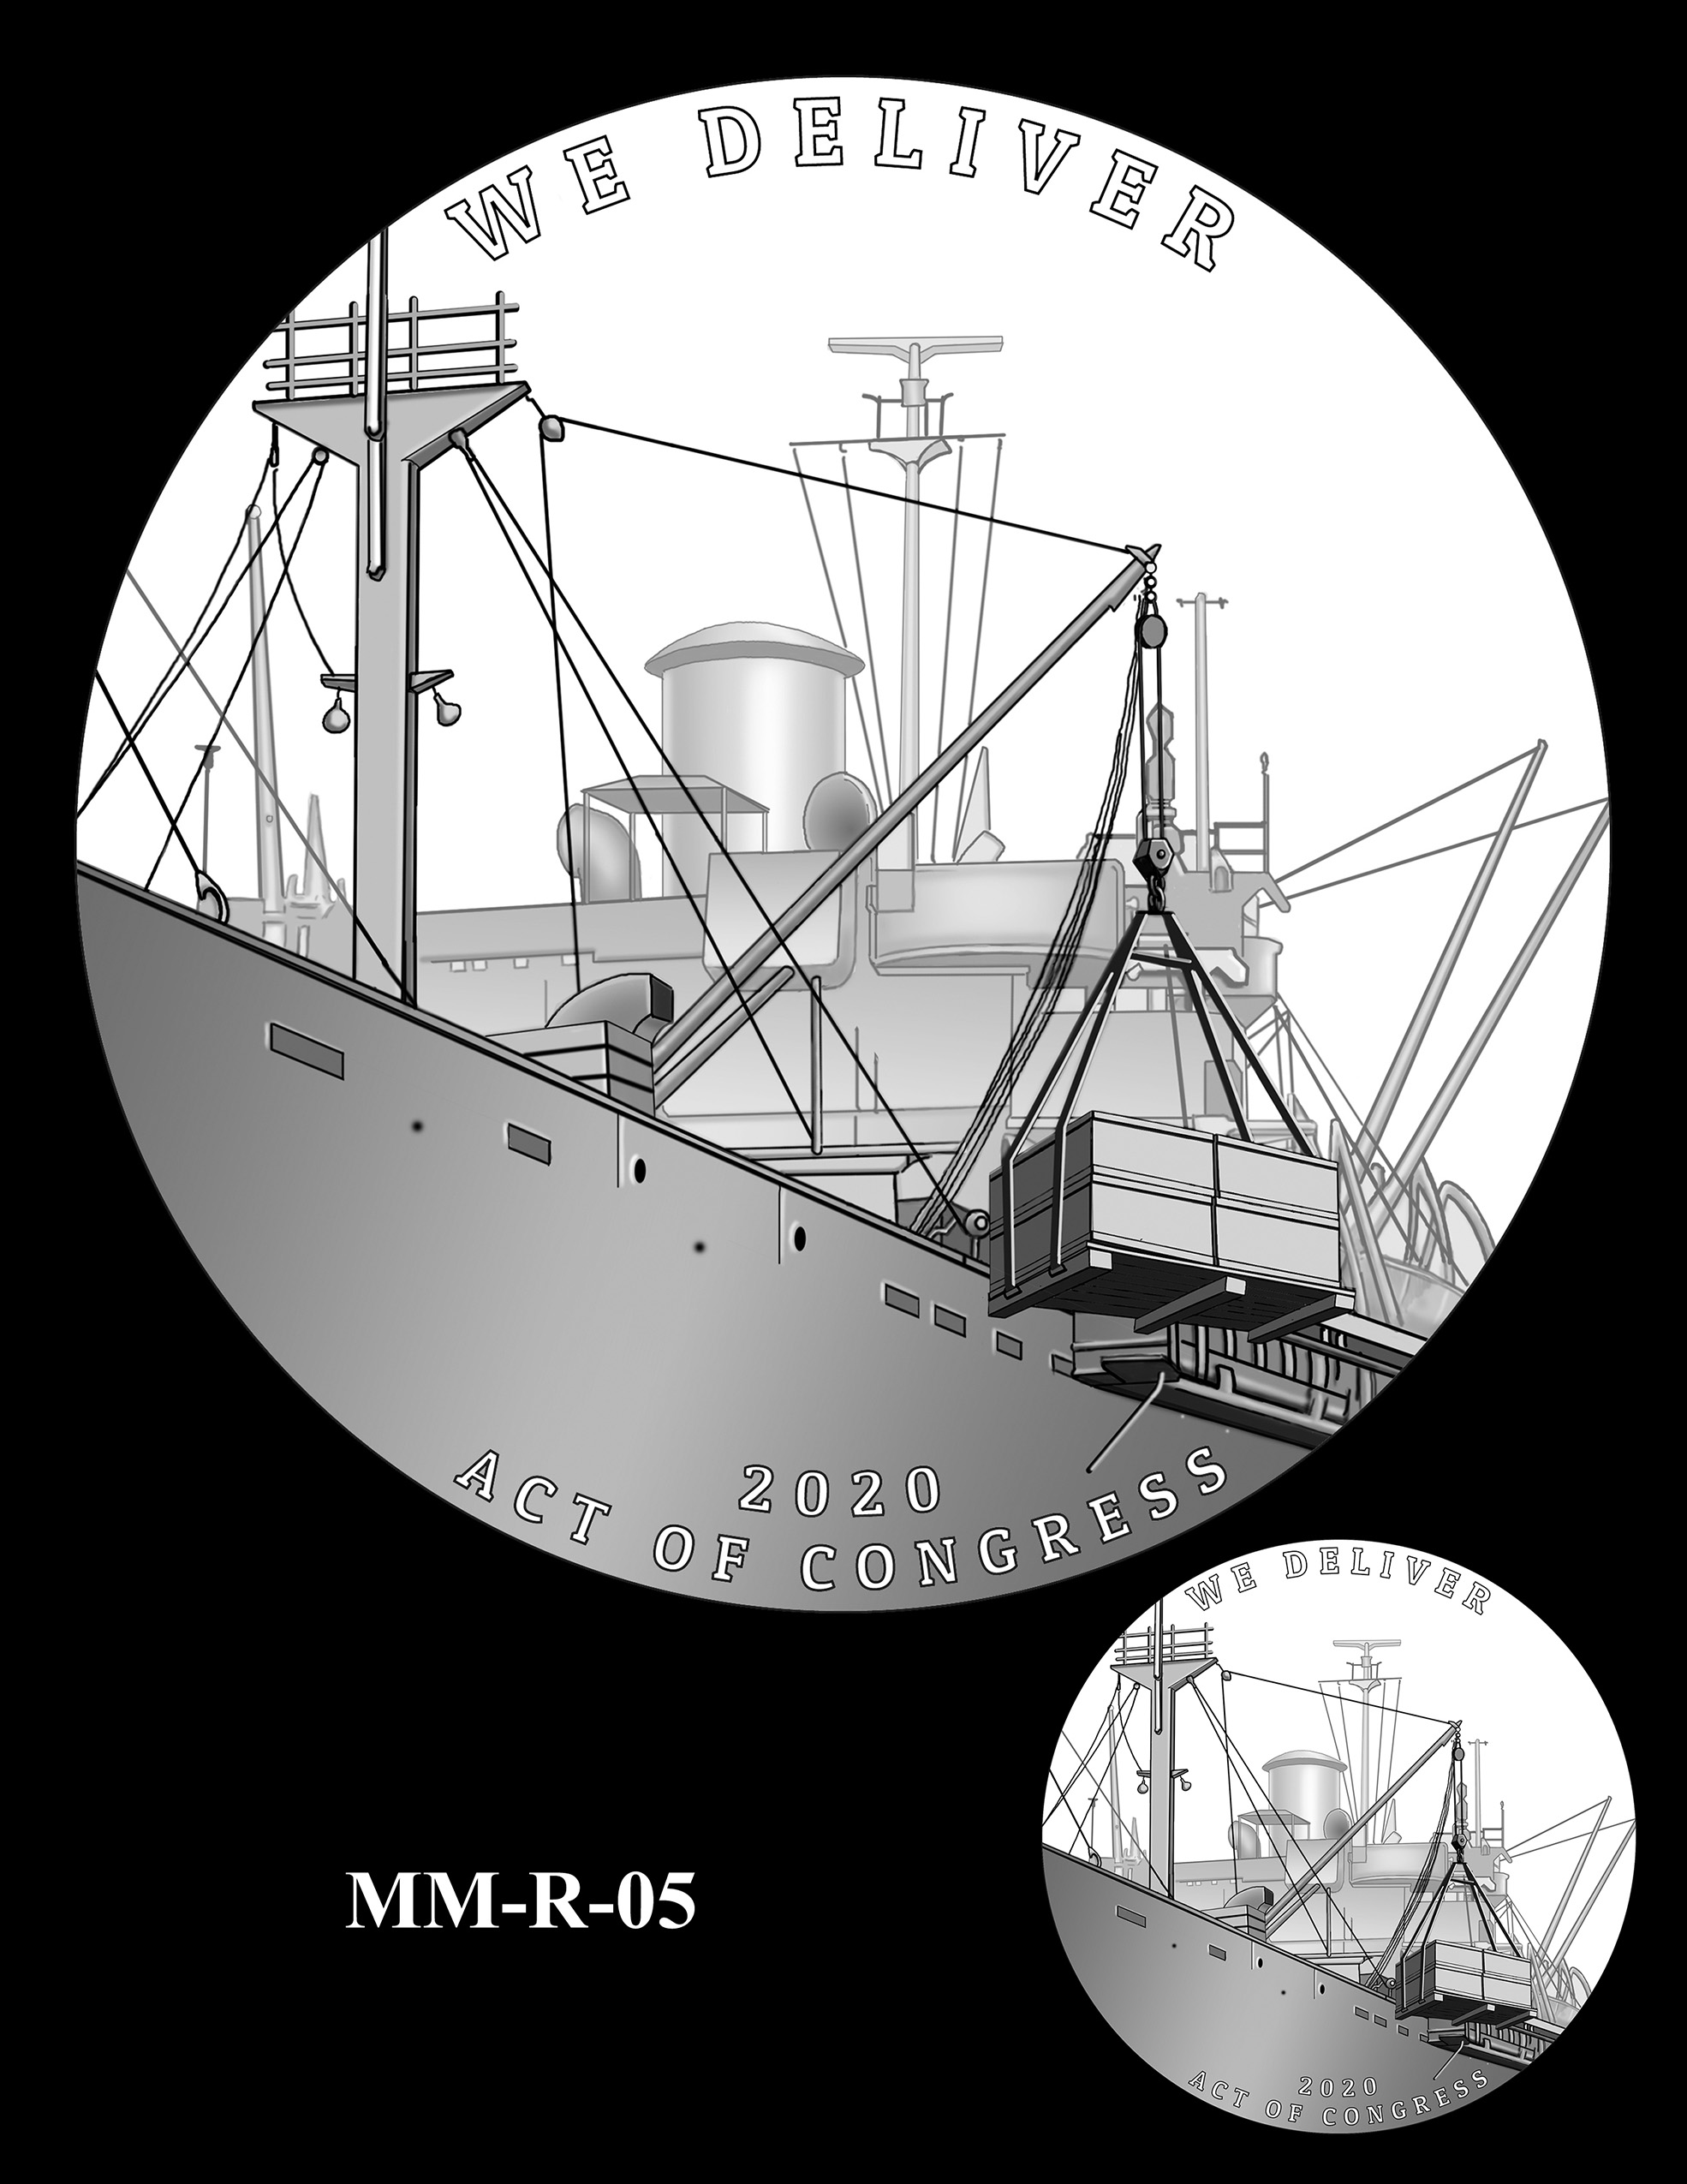 MM-R-05 -- Merchant Mariners of World War II Congressional Gold Medal